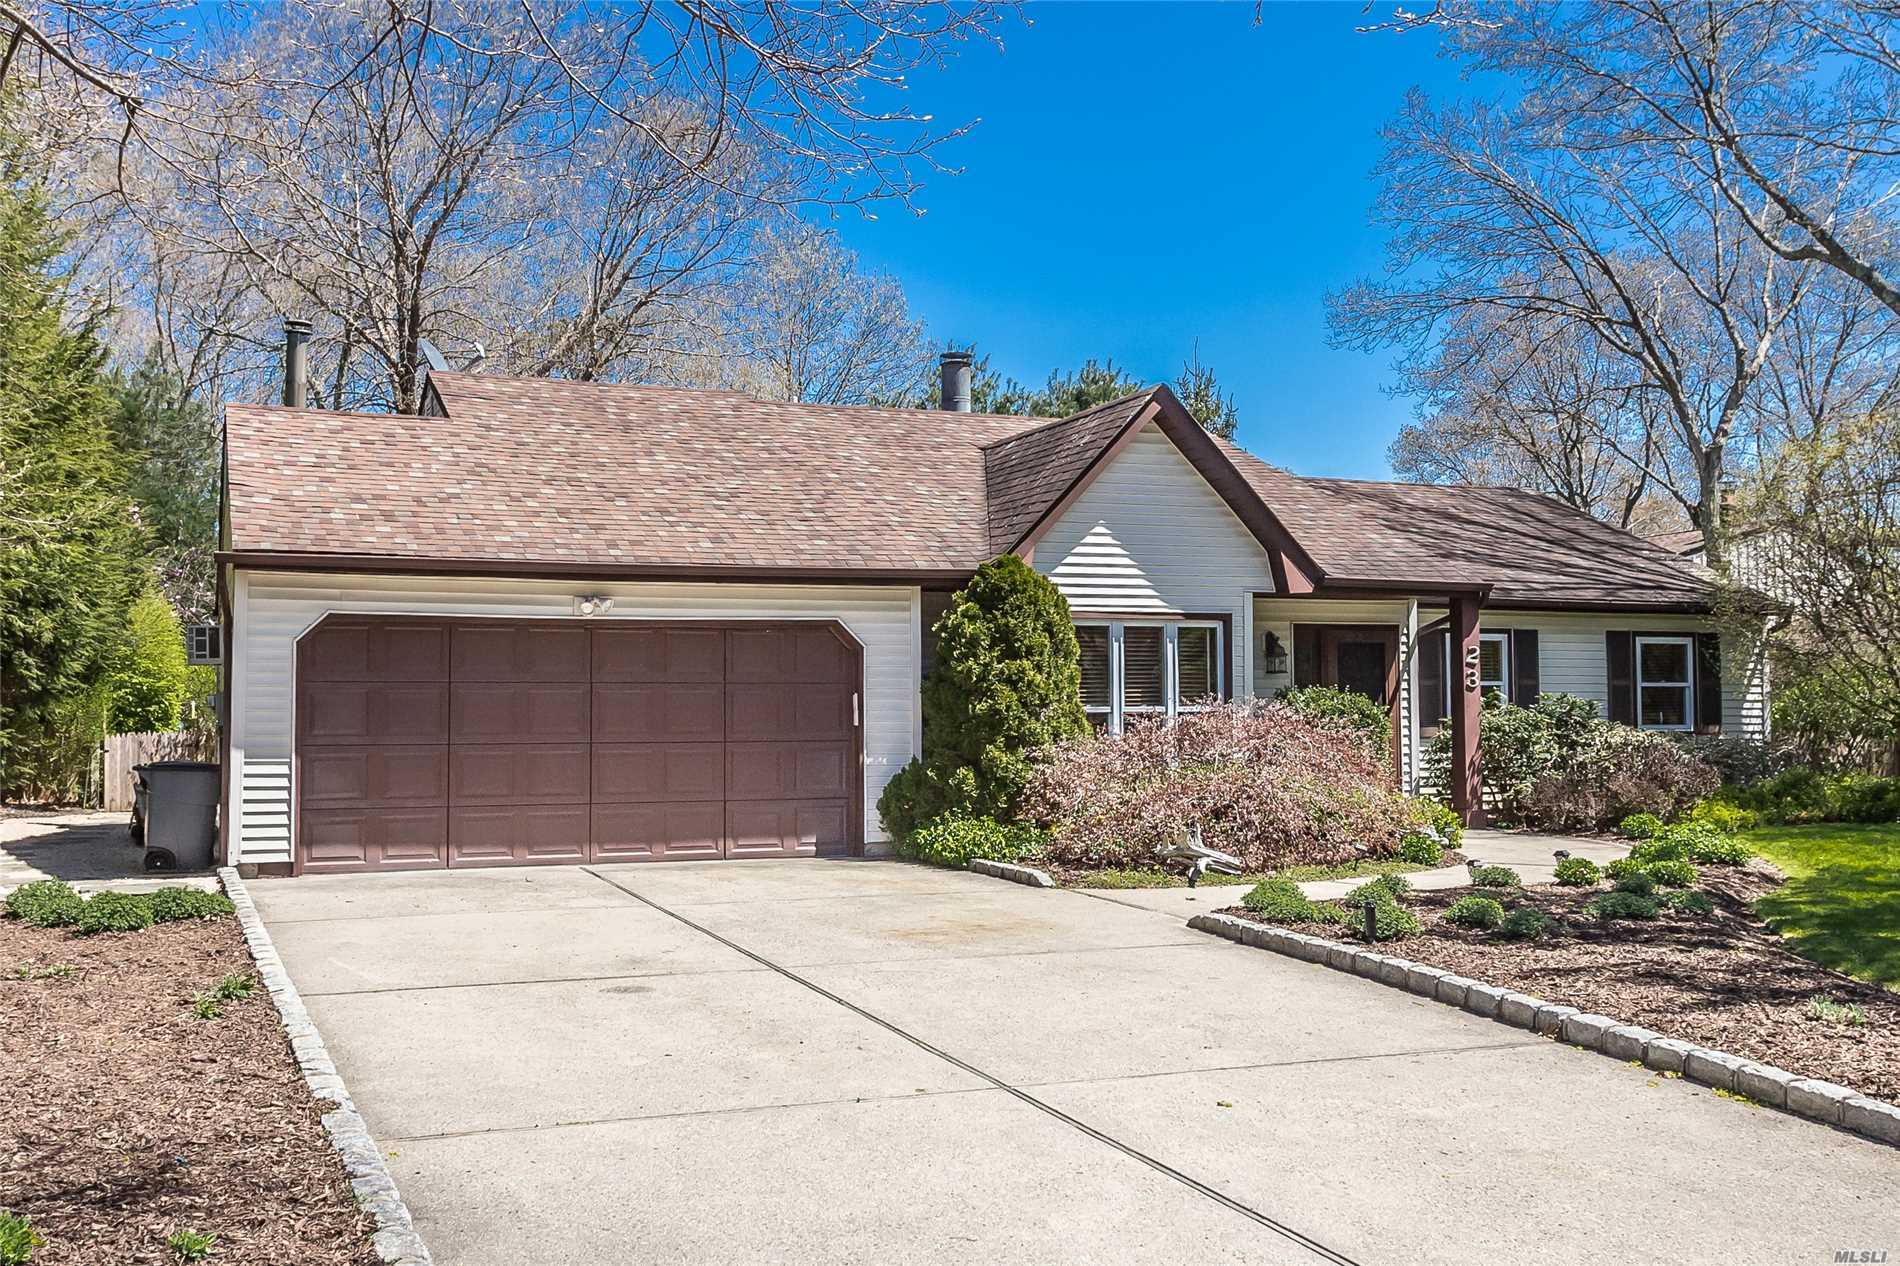 Quaint 4 Bedroom 2 Bath Ranch Nestled In Nearby Ridge Conservation Observation Area. This House Has New Wood Flooring t With Double Sided Fireplace, Eat In Kitchen. Deck off the Back, Great For Entertaining. Peaceful And Park Like Backyard With Added Water Feature. Using Only Organic Landscaping Materials. 2 Car Air Conditioned Garage...MUST SEE!